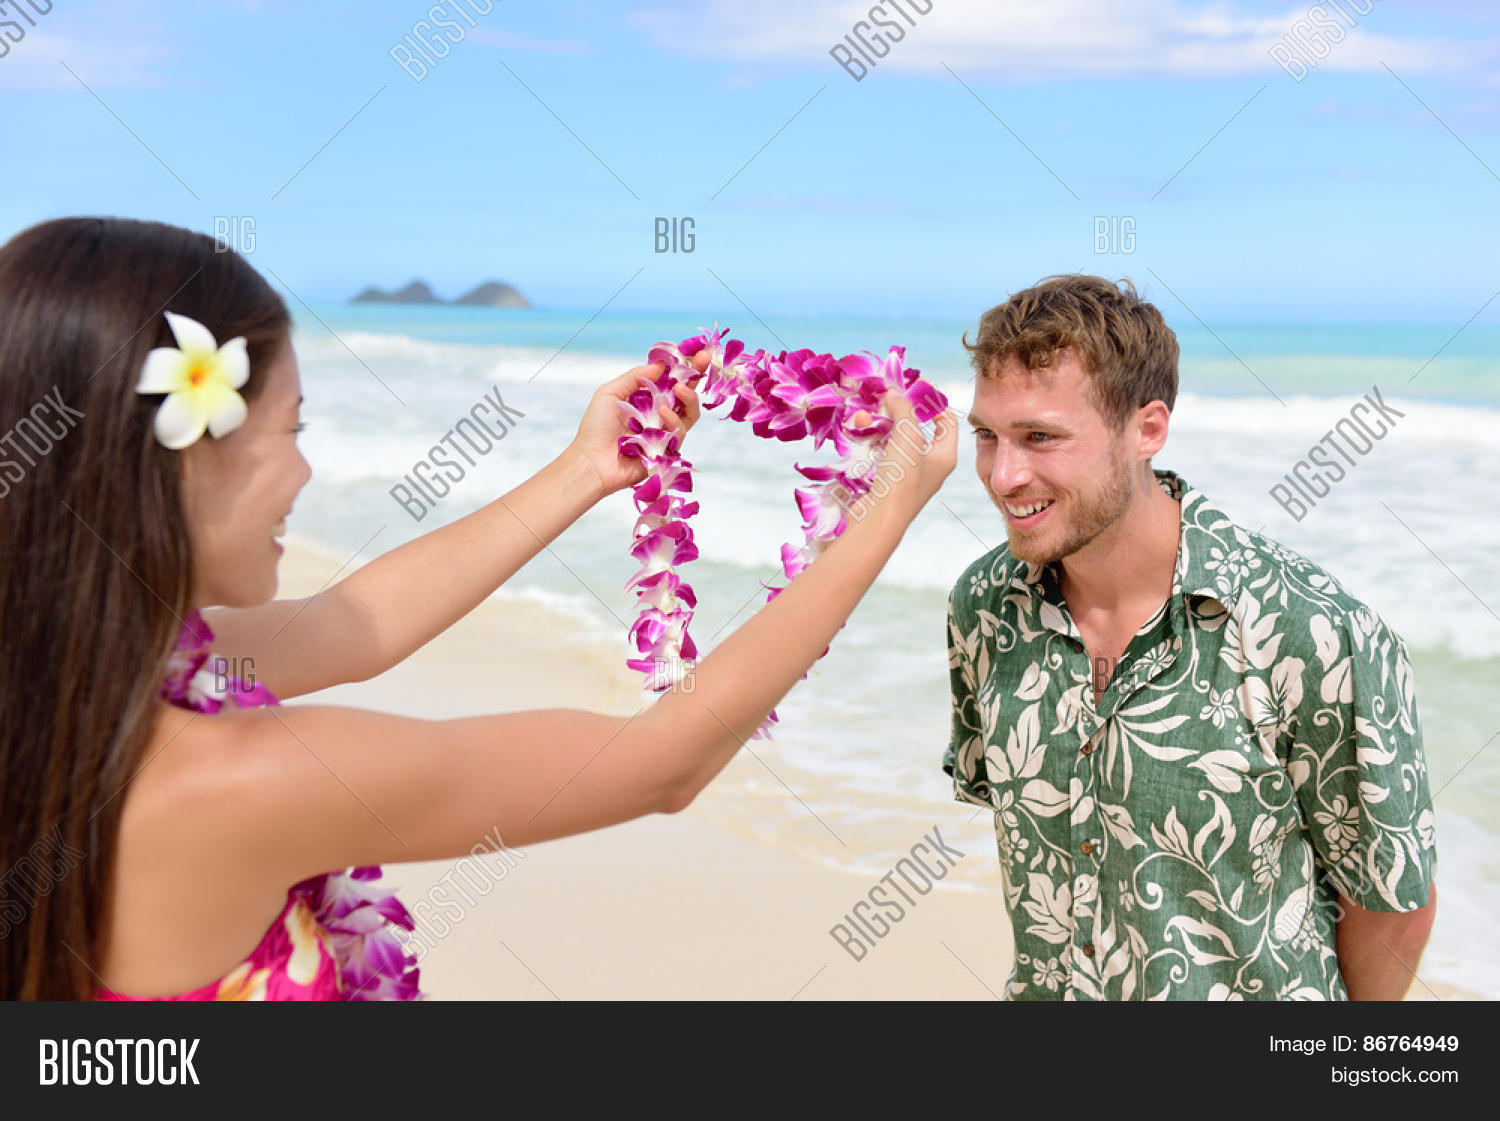 Hawaii woman giving image photo free trial bigstock hawaii woman giving lei garland of pink orchids welcoming tourist on hawaiian beach portrait of izmirmasajfo